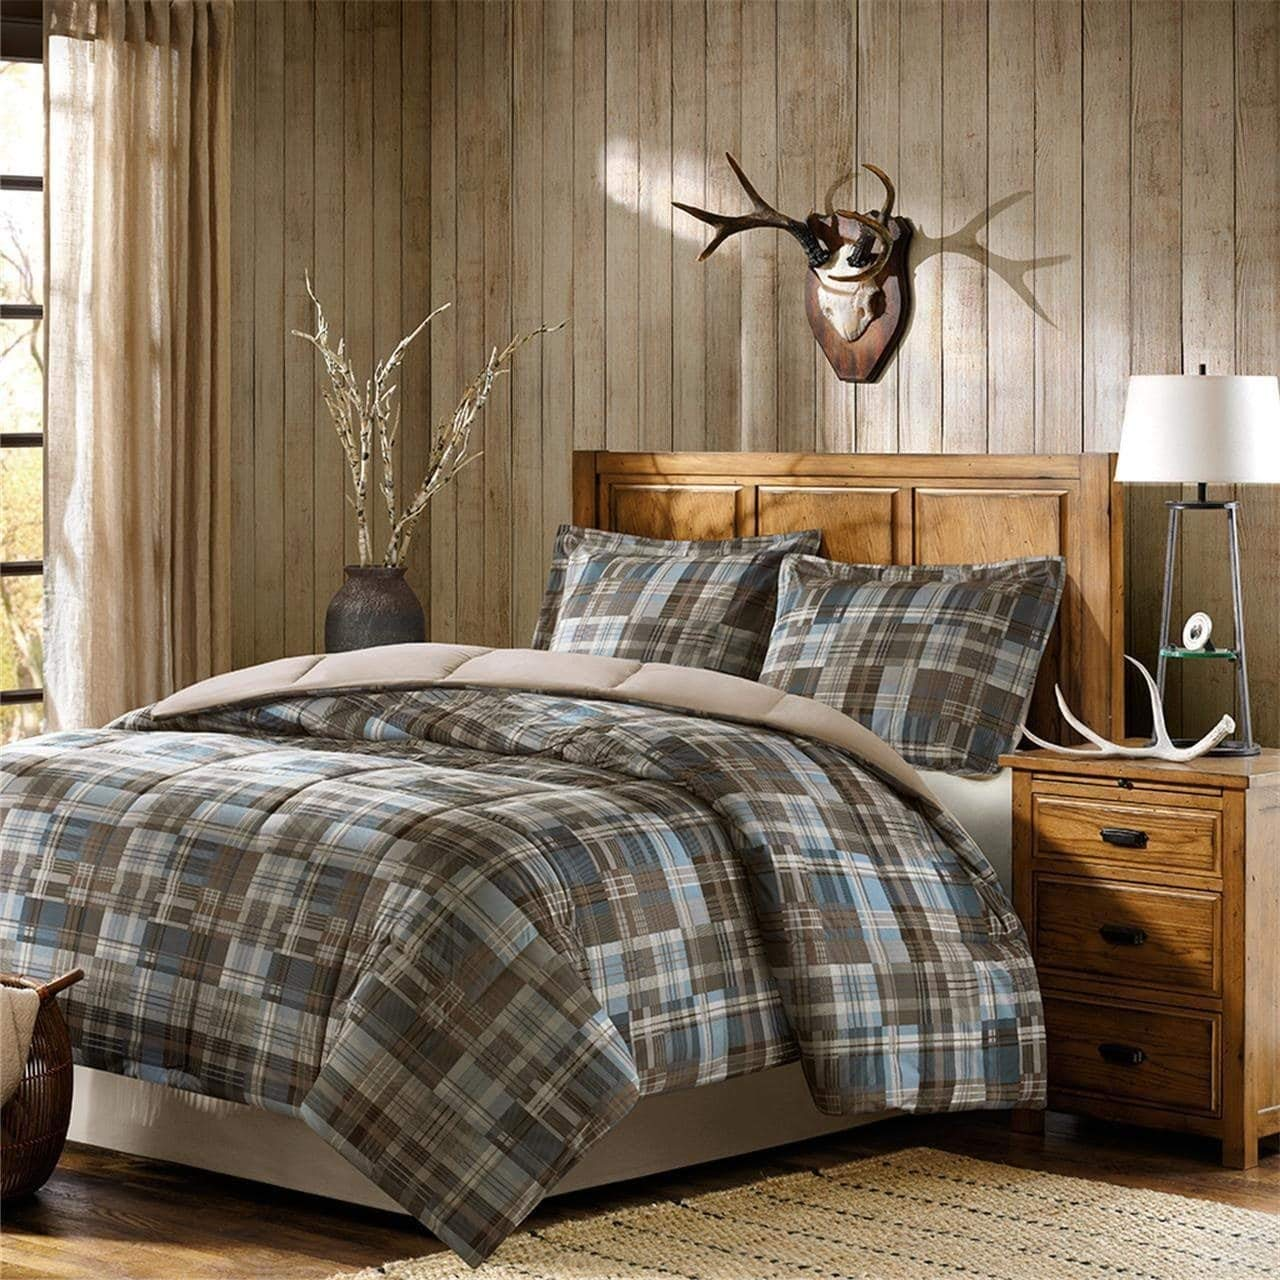 3 Piece Brown Blue Plaid Pattern Comforter Full Queen Set, For Luxury Master Bedrooms, Elegance Tartan Checkered Design, Cabin Theme Bedding, Classic Style, Super Soft & Cozy, Polyester, For Unisex